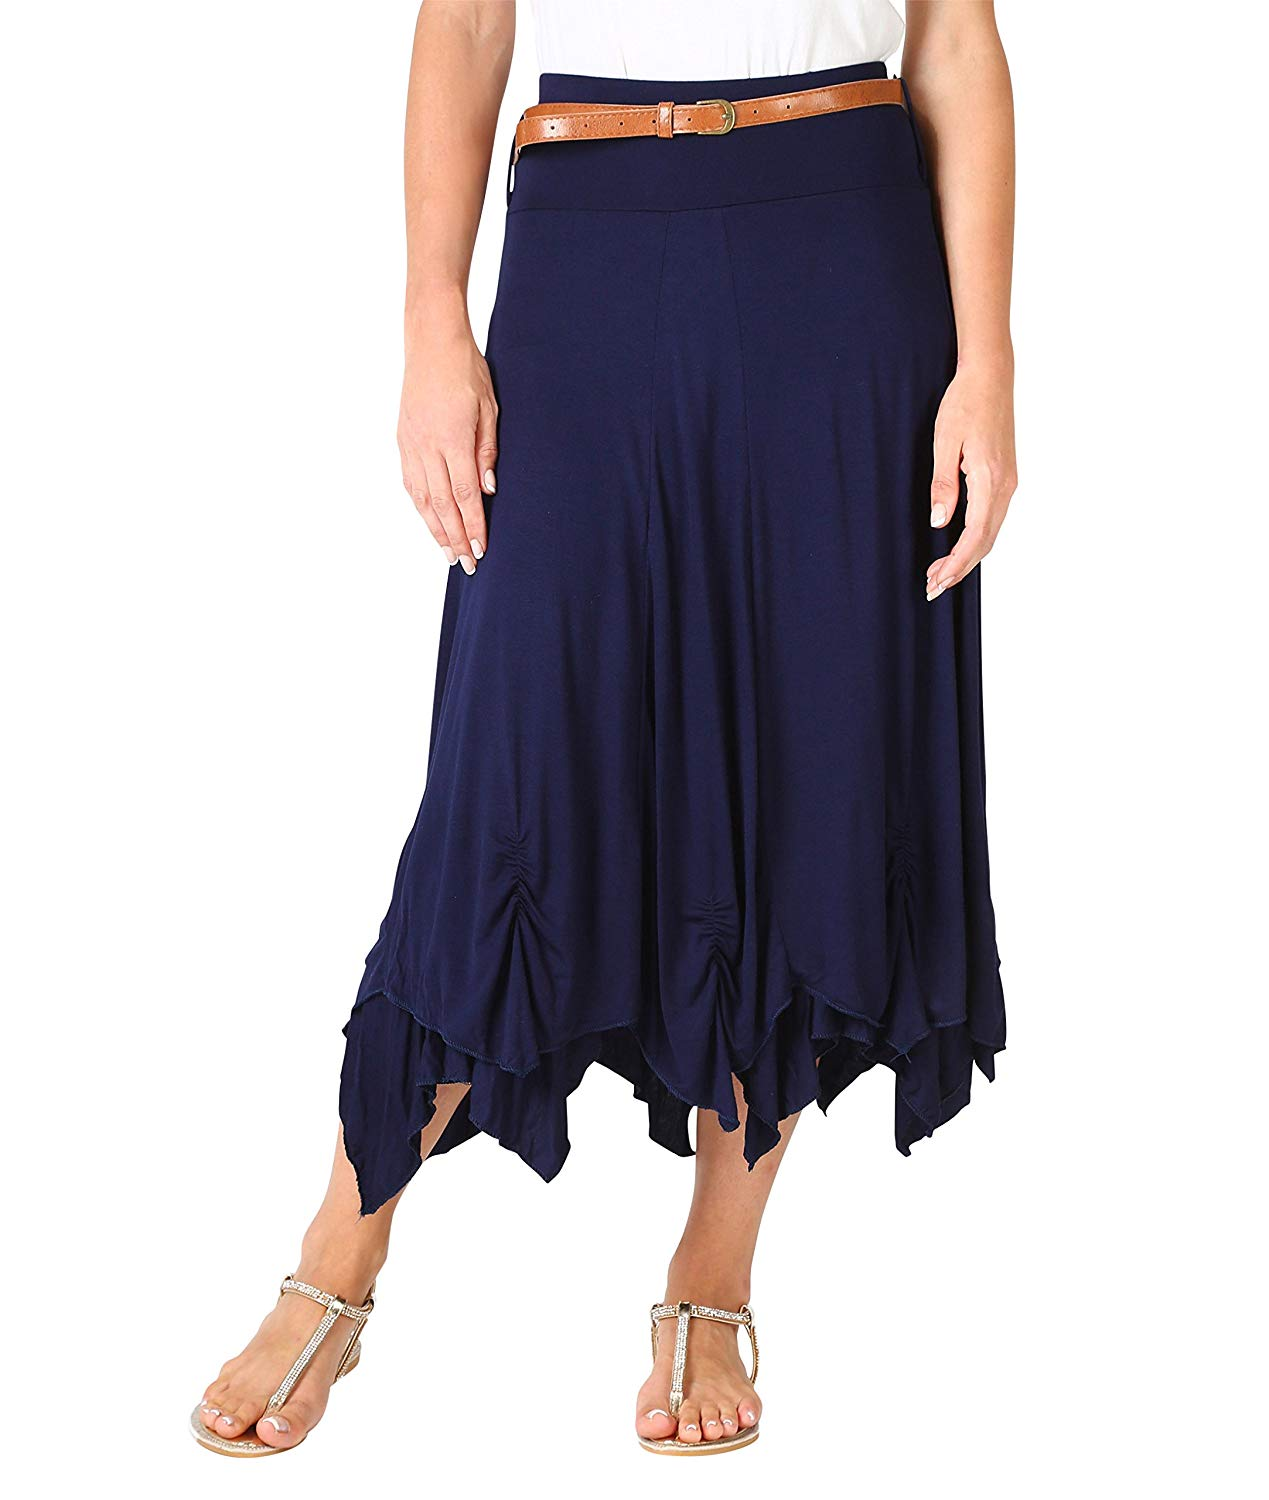 2709398ae9 Get Quotations · KRISP Womens Bohemian Gypsy Cotton Belted Elastic High  Waist Maxi Long Skirt Plus Size